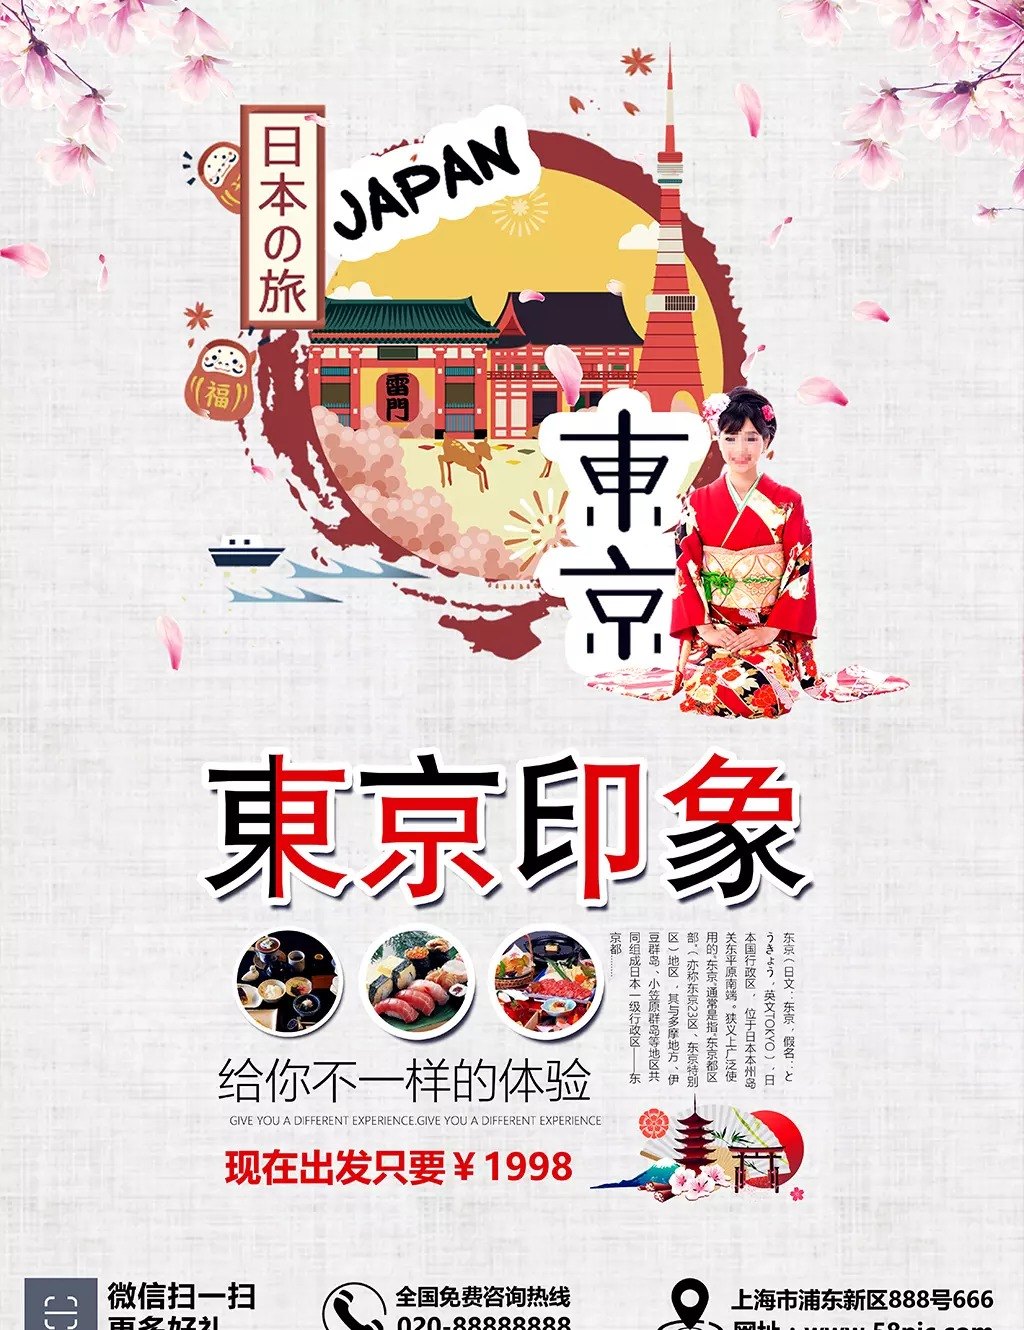 Japan Tourist Attraction Tokyo Poster Tourism Offer Places Of Interest Food Japan Poster Template Download On Pngtree